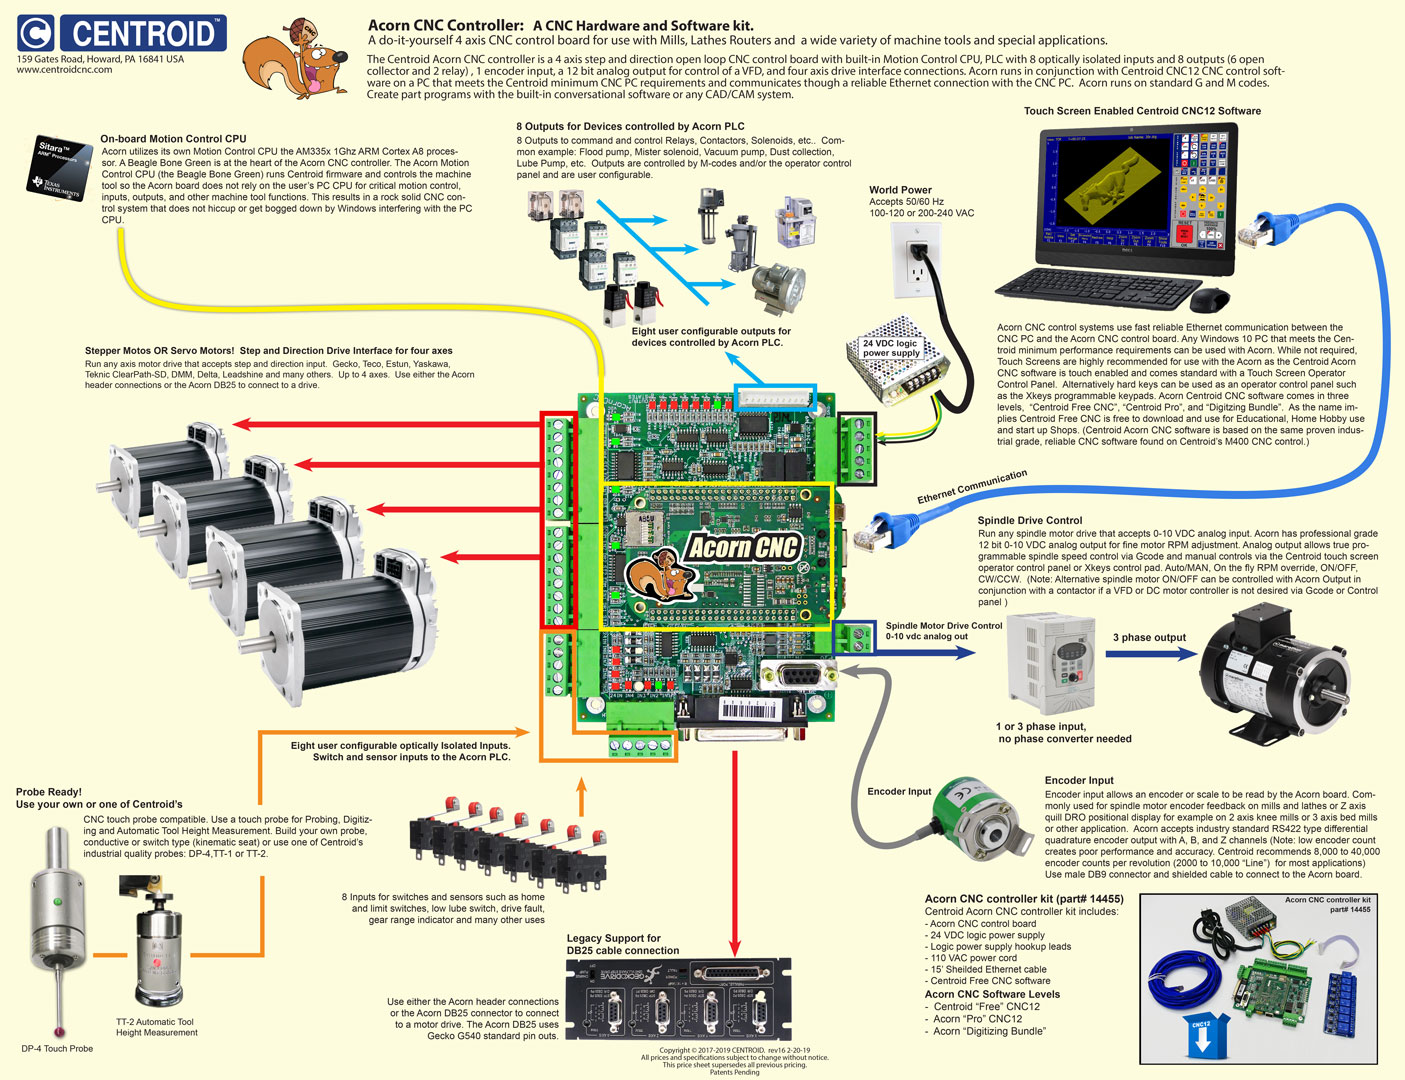 Acorn Cnc Controller Step And Direction 4 Axis Control Board 220 110 3ph Panel Wiring Diagram Overview